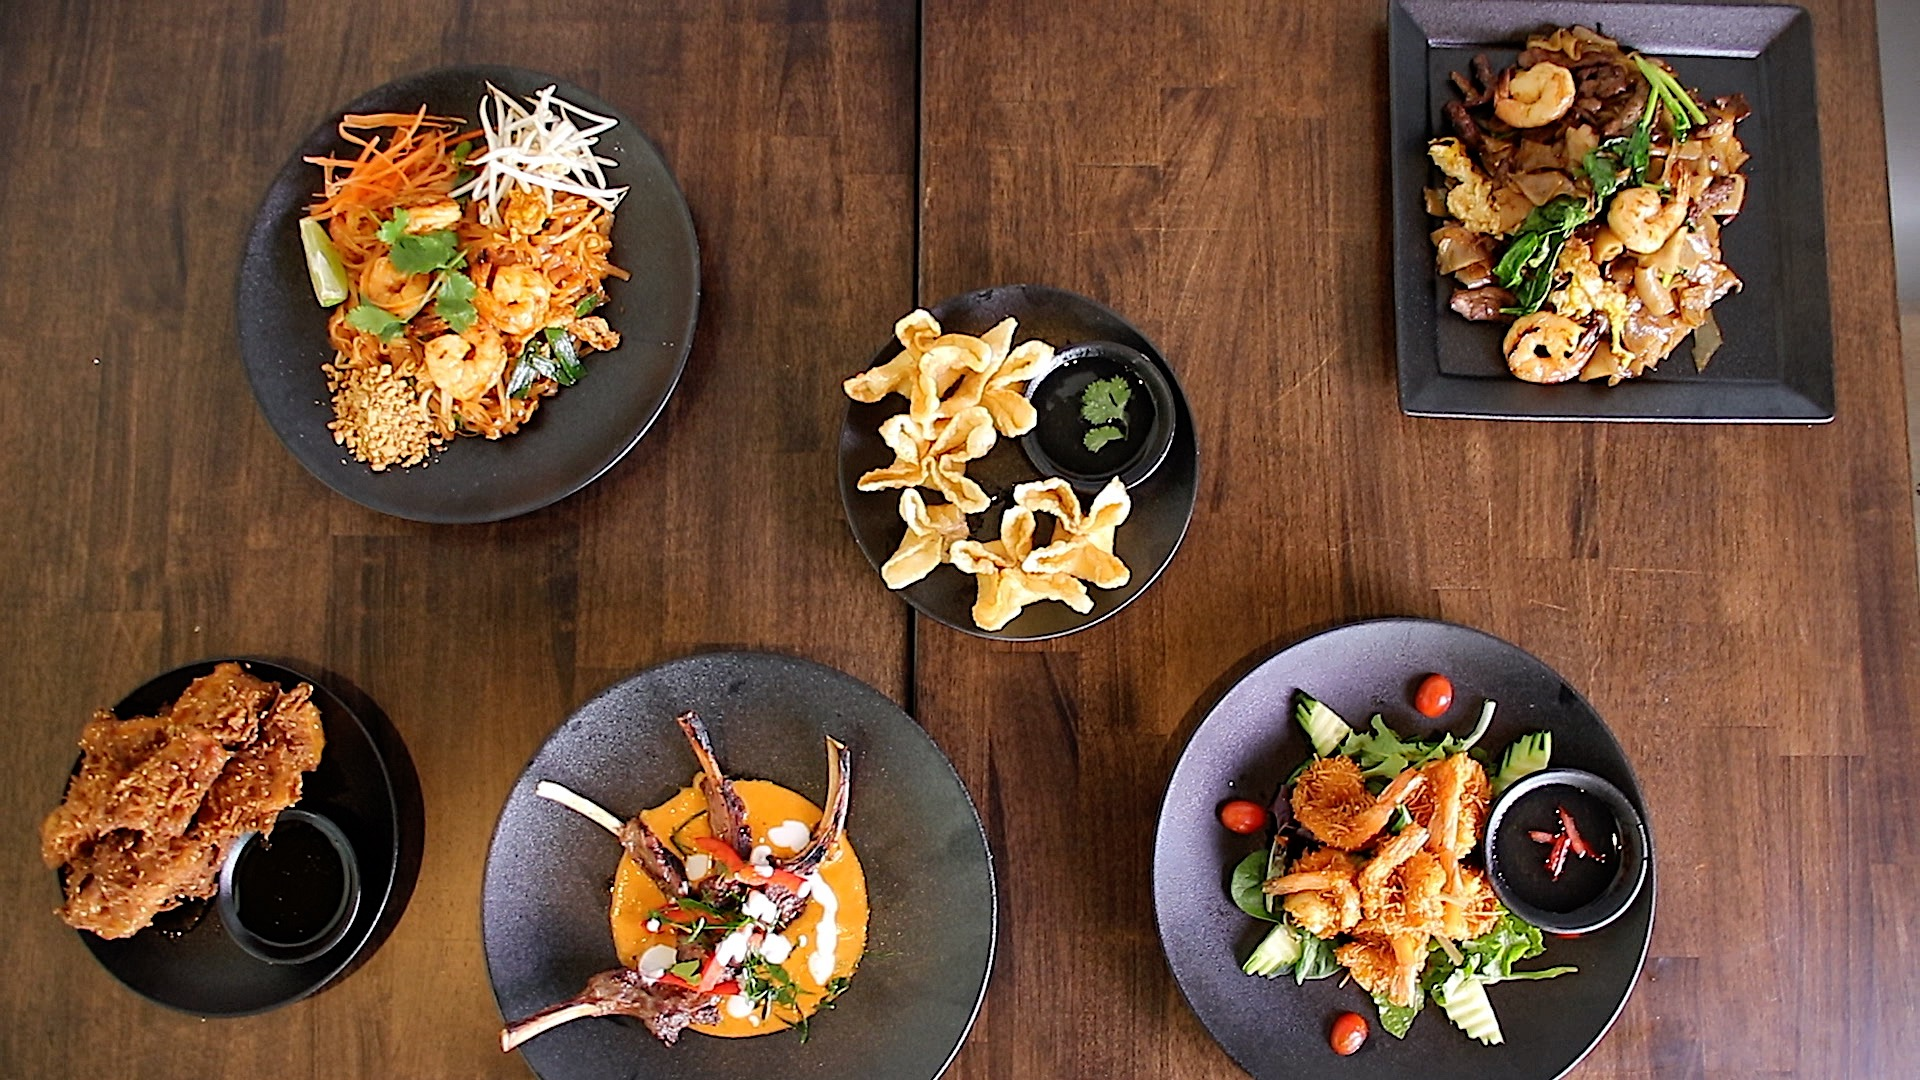 ARE YOU READY FOR A NEW THAI FOOD EXPERIENCE?